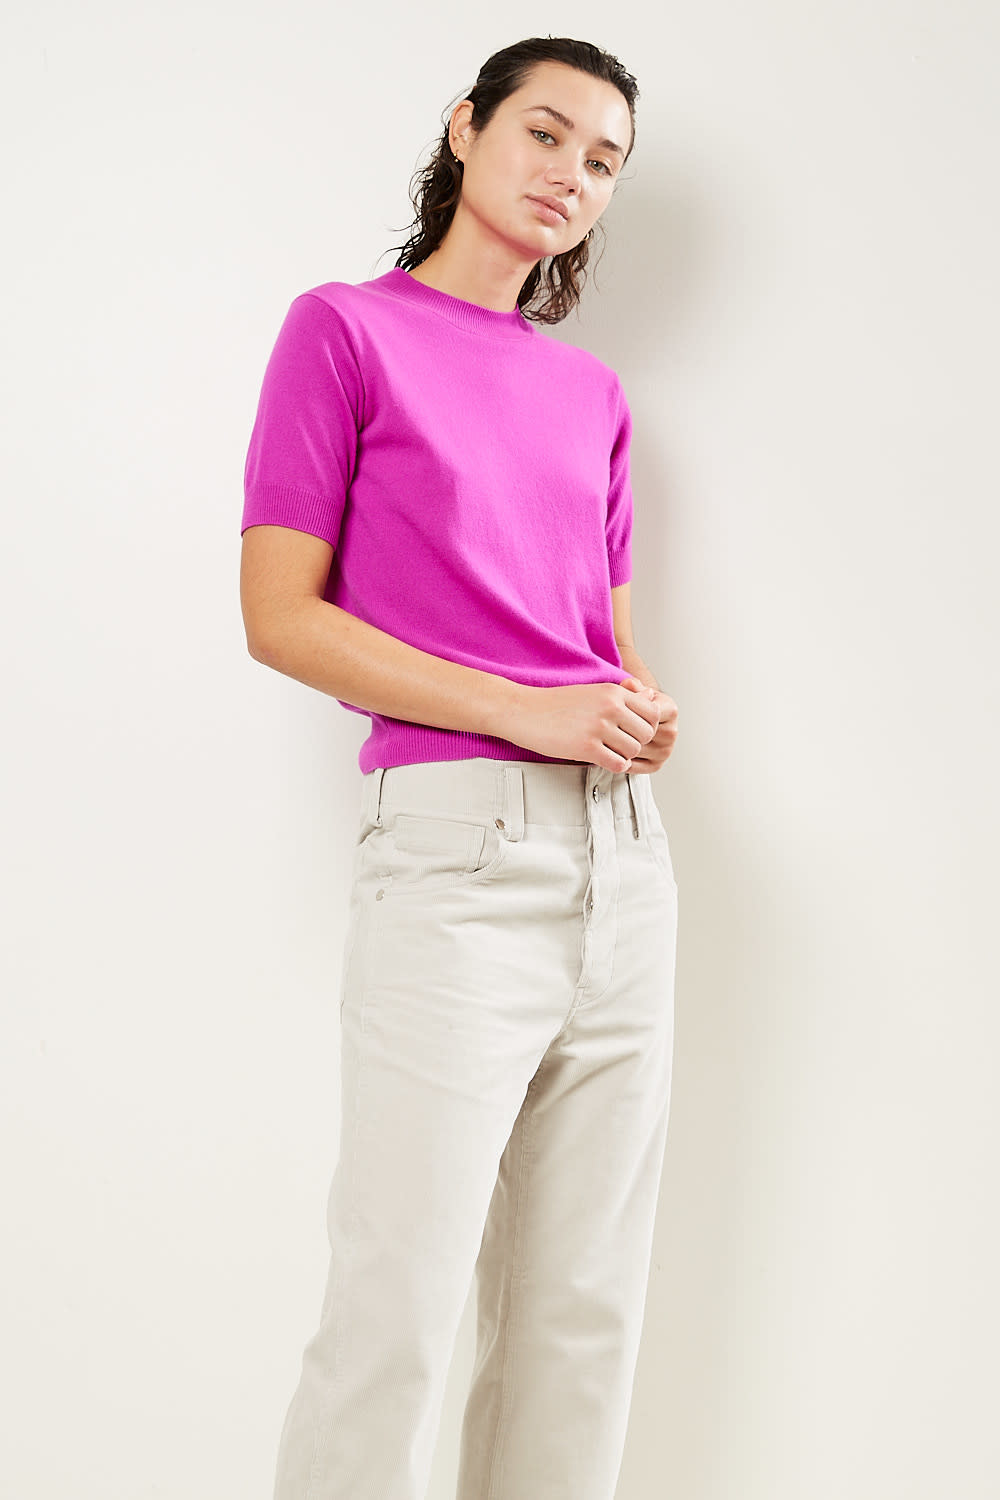 Sofie d'Hoore - Matisse 1 ply short sleeve sweater